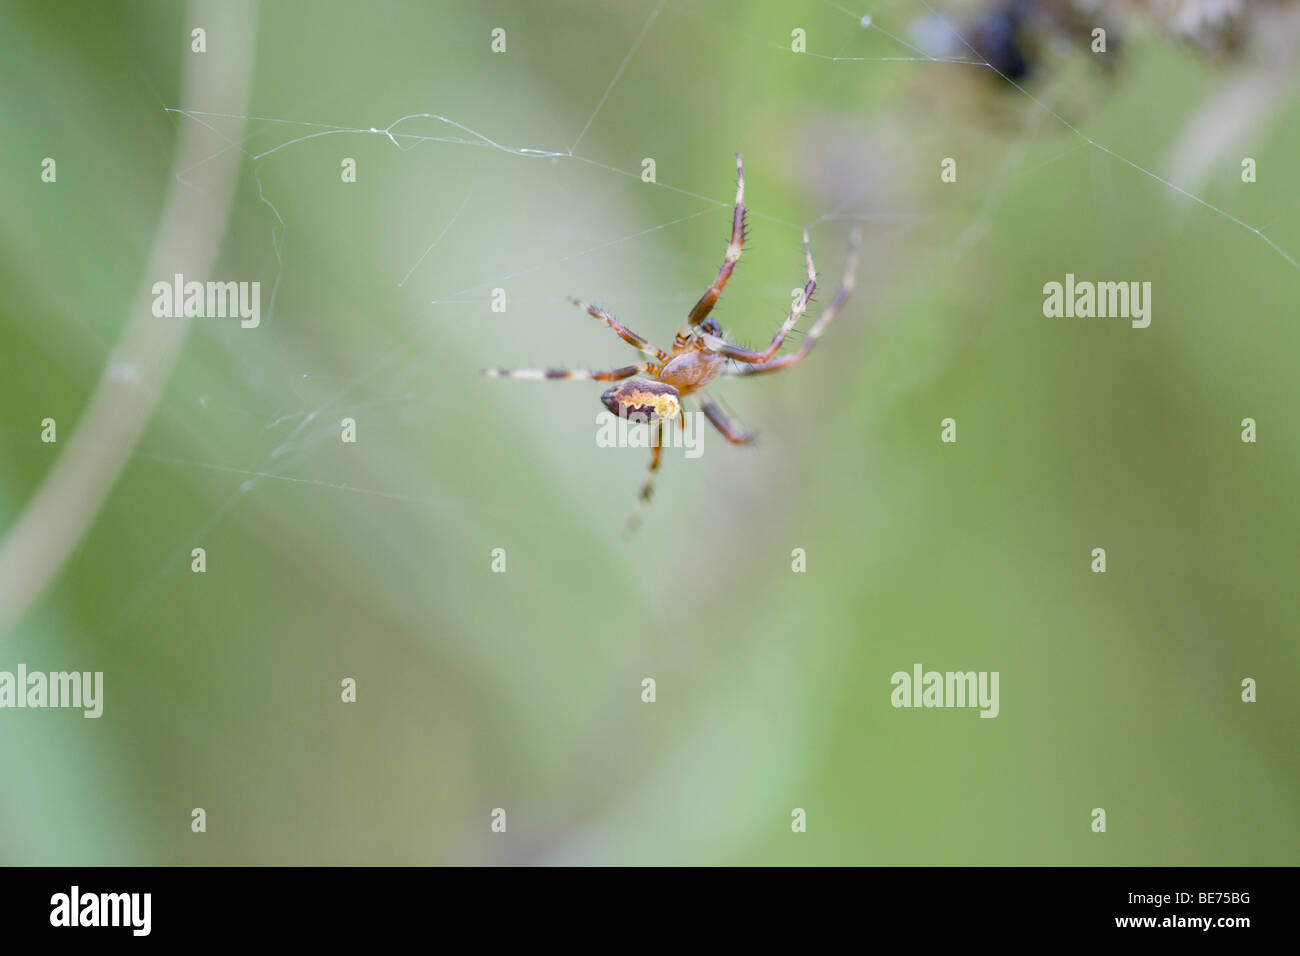 Walnut Orb Weaver spider Nuctenea umbratica, in web. - Stock Image